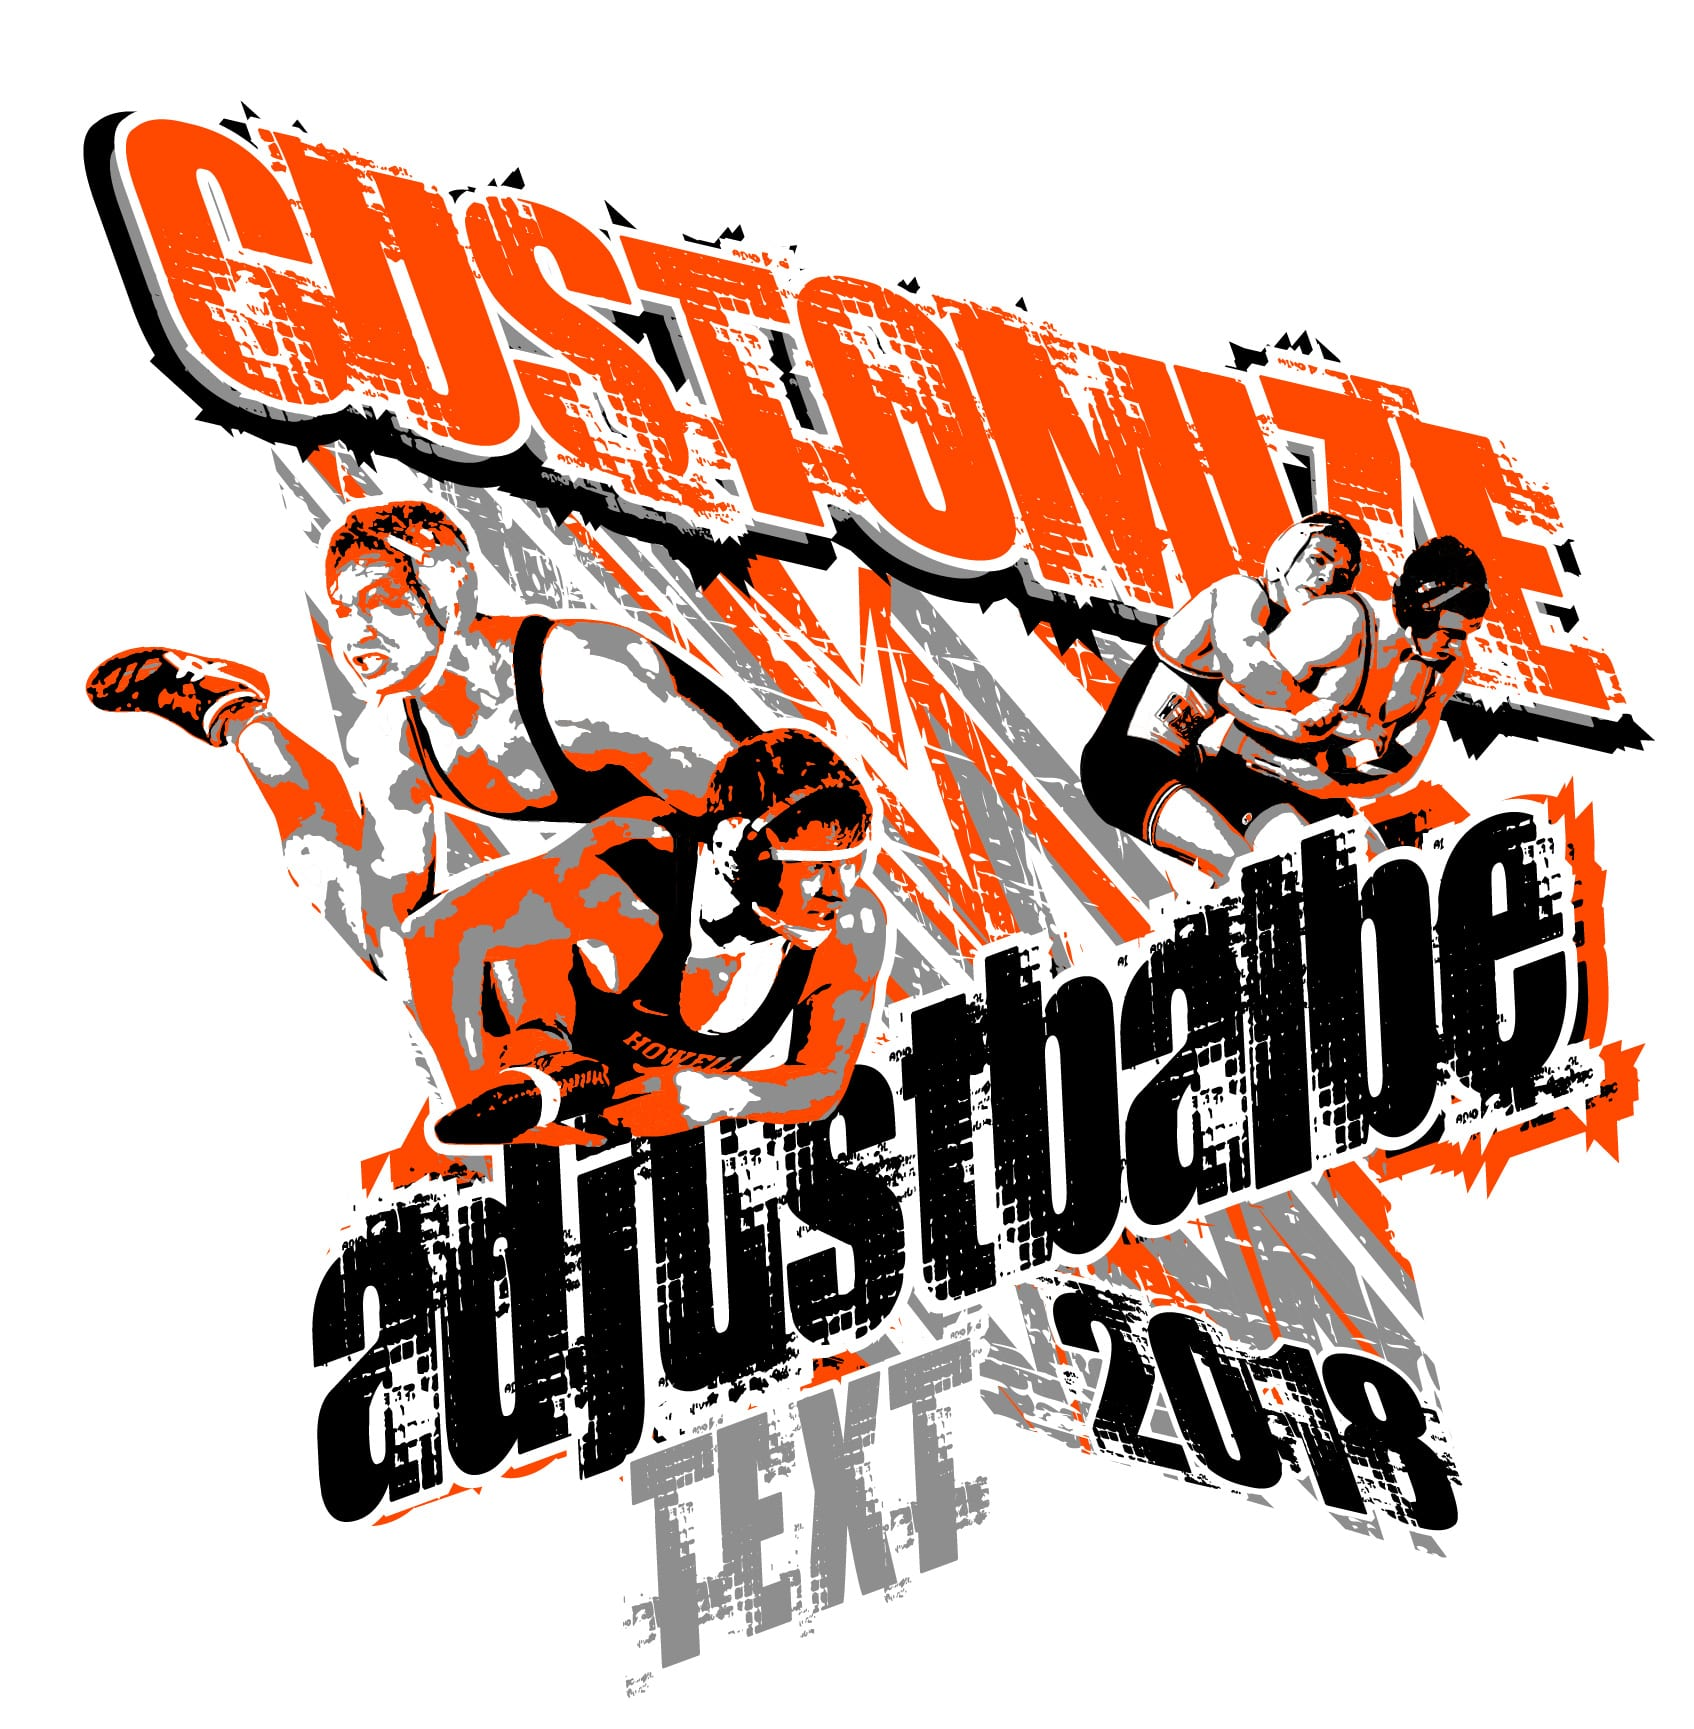 450ebf437 WRESTLING t-shirt logo design with adjustable text and all graphic elements